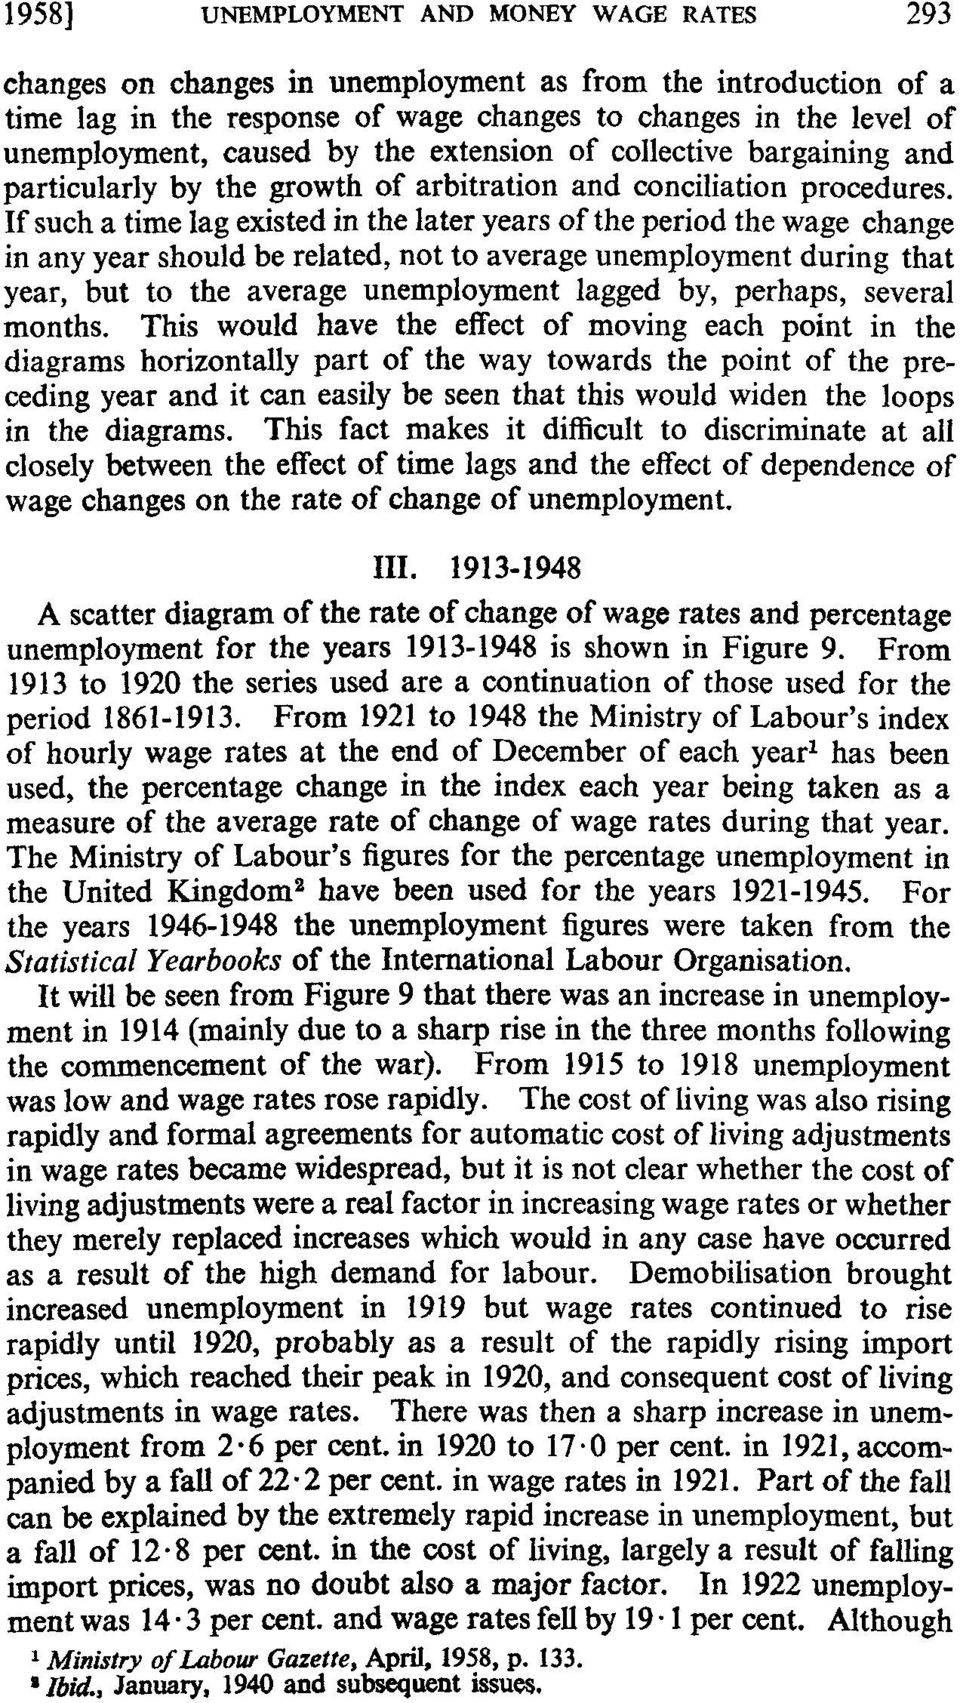 If such a time lag existed in the later years of the period the wage change in any year should be related, not to average unemployment during that year, but to the average unemployment lagged by,